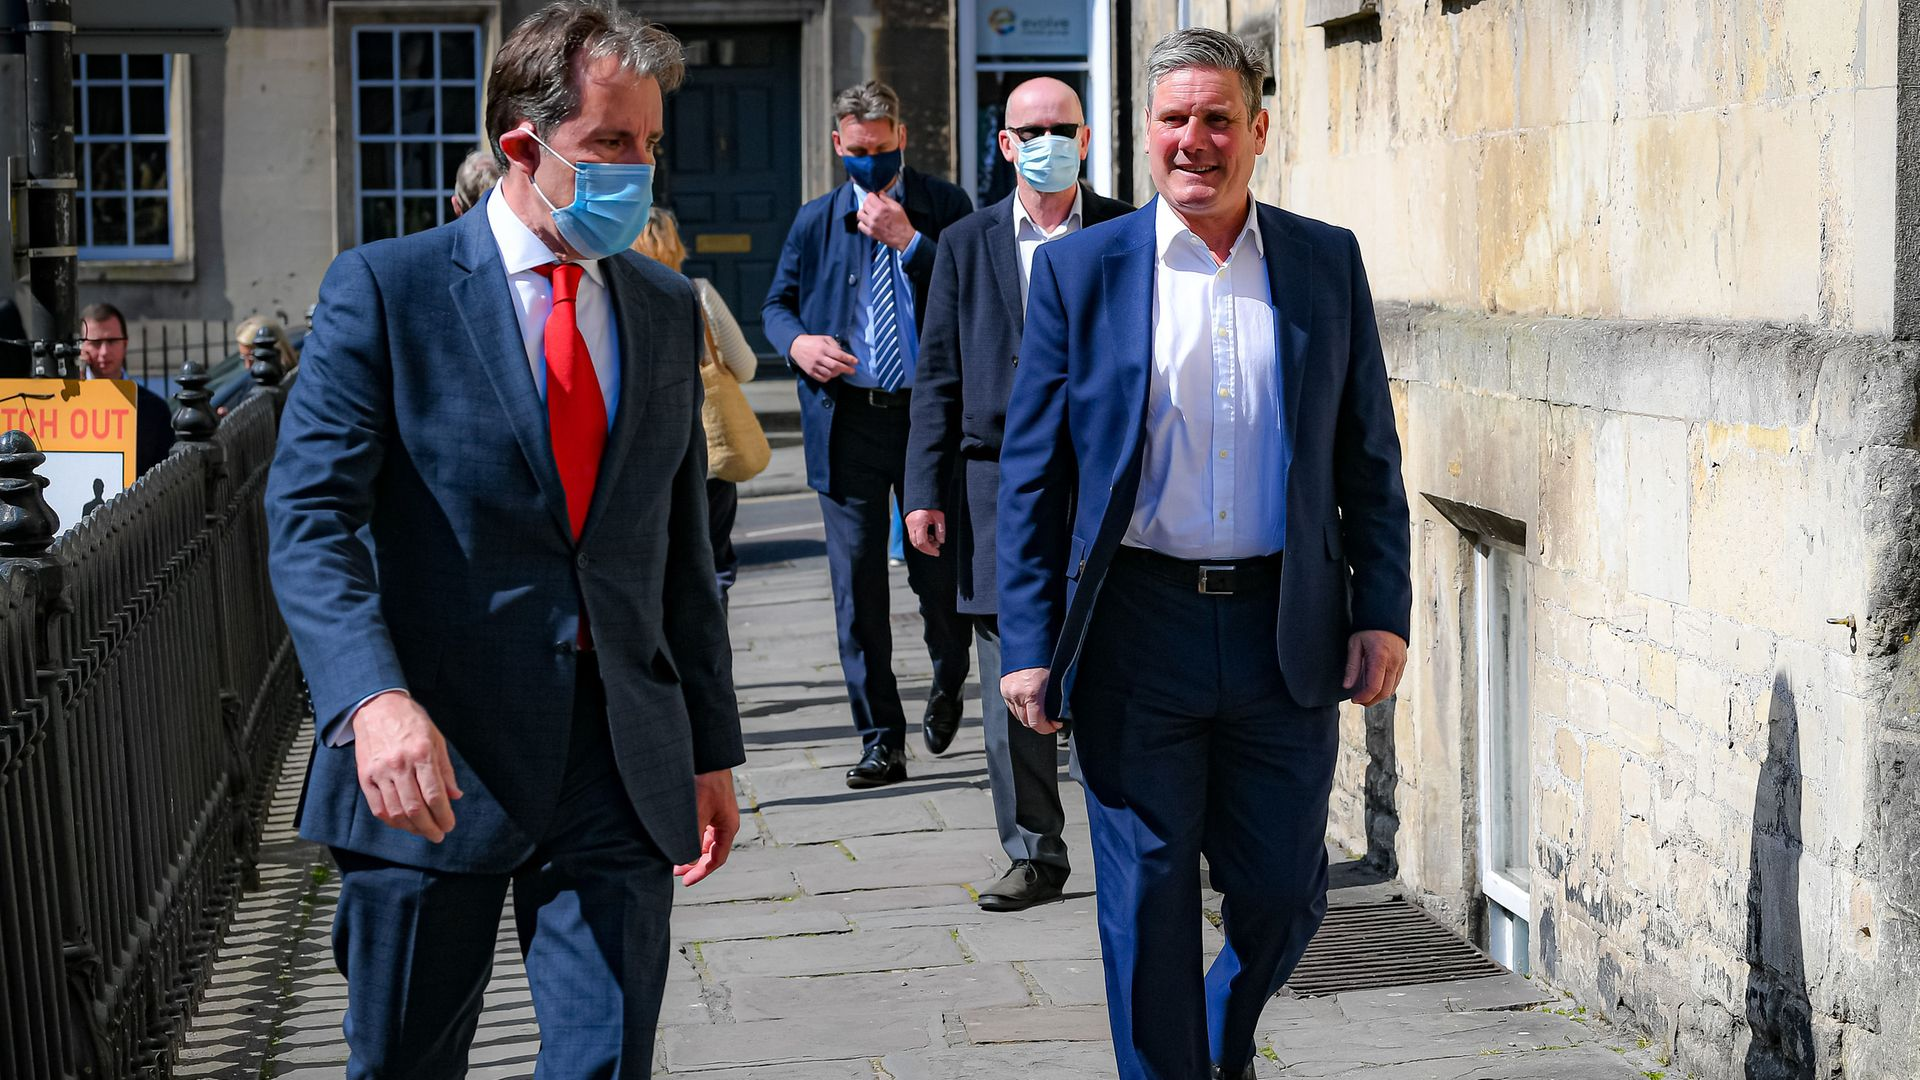 Labour leader Sir Keir Starmer, with Dan Norris, left, during a visit to Bath, to support West of England metro mayoral candidate Dan Norris - Credit: PA